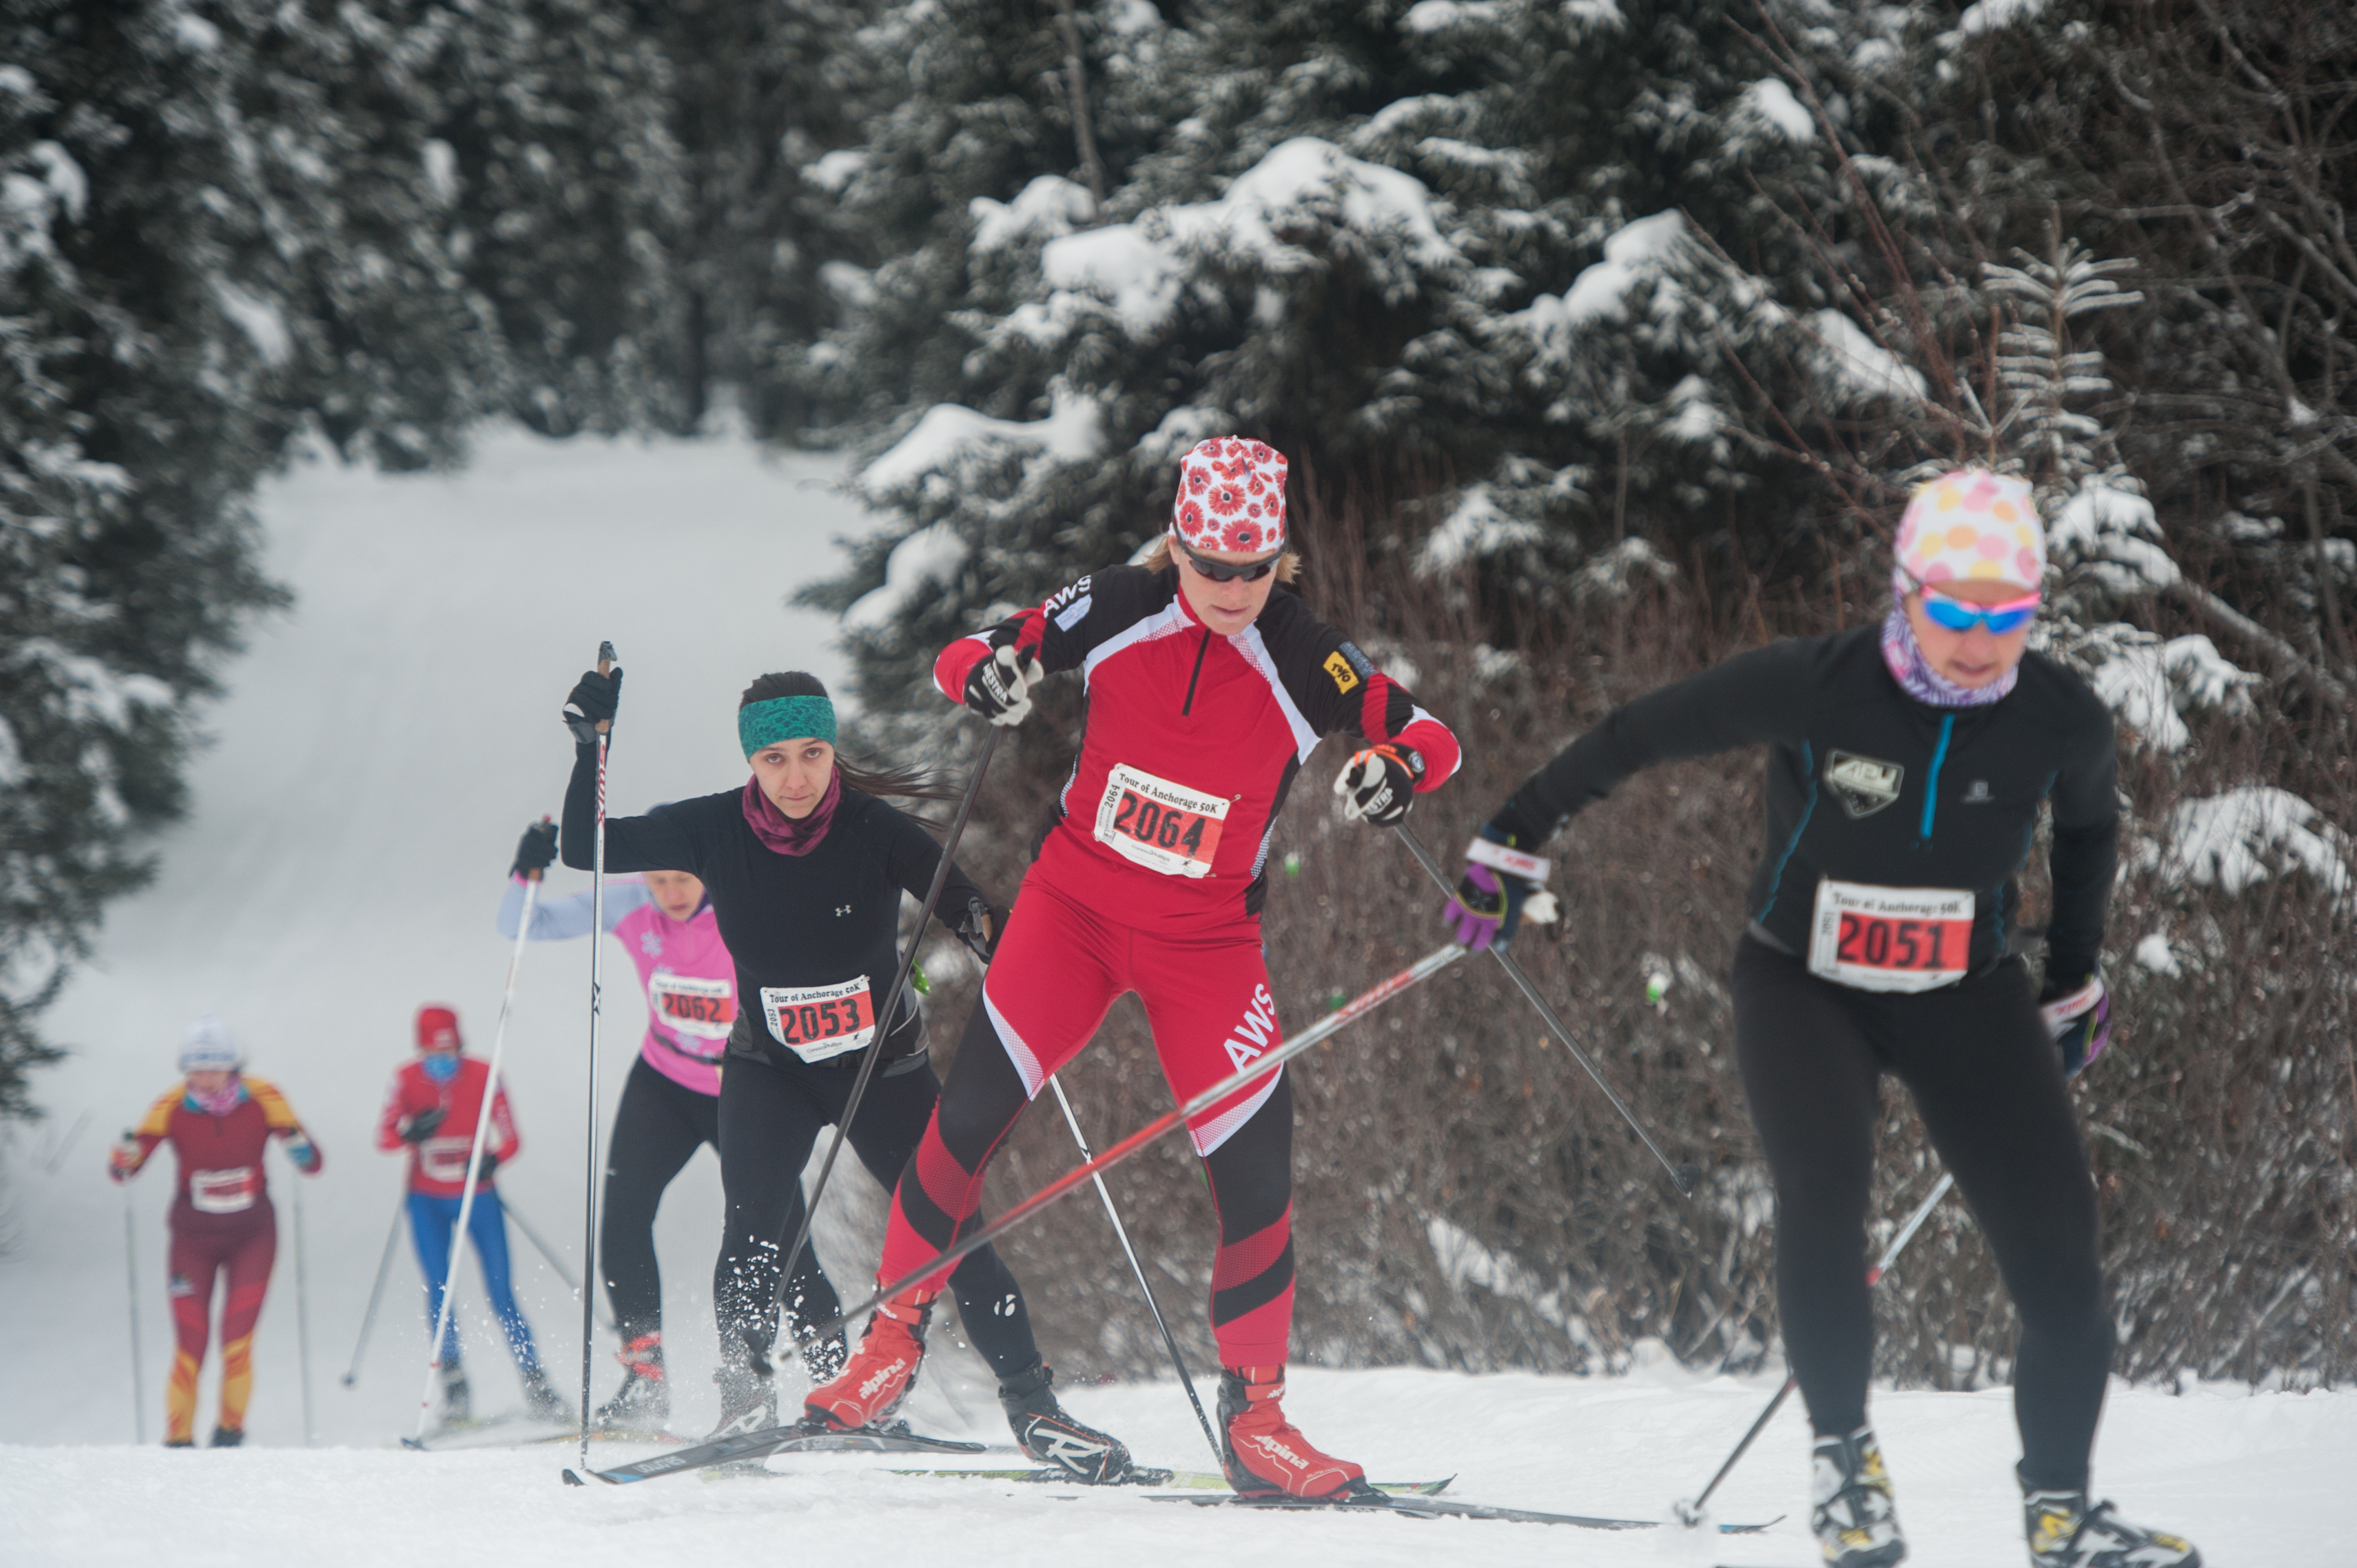 Tour Of Anchorage Results Posted Thank You To All Our Skiers Bikers Volunteers Nordic Skiing Association Of Anchorage